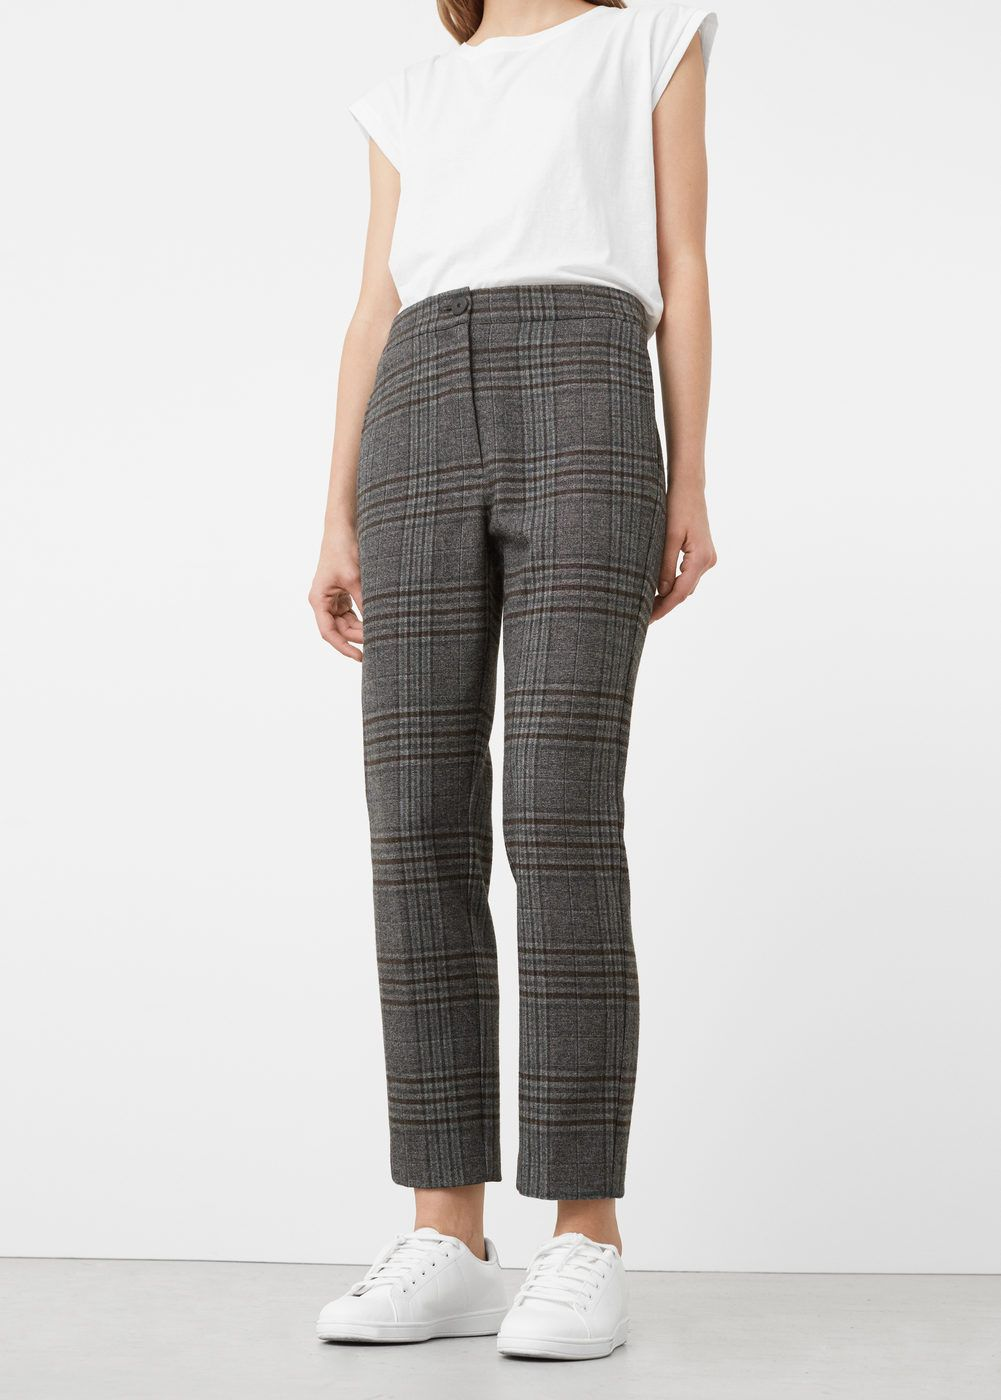 Check suit trousers - Pants for Women  05f184e6685a